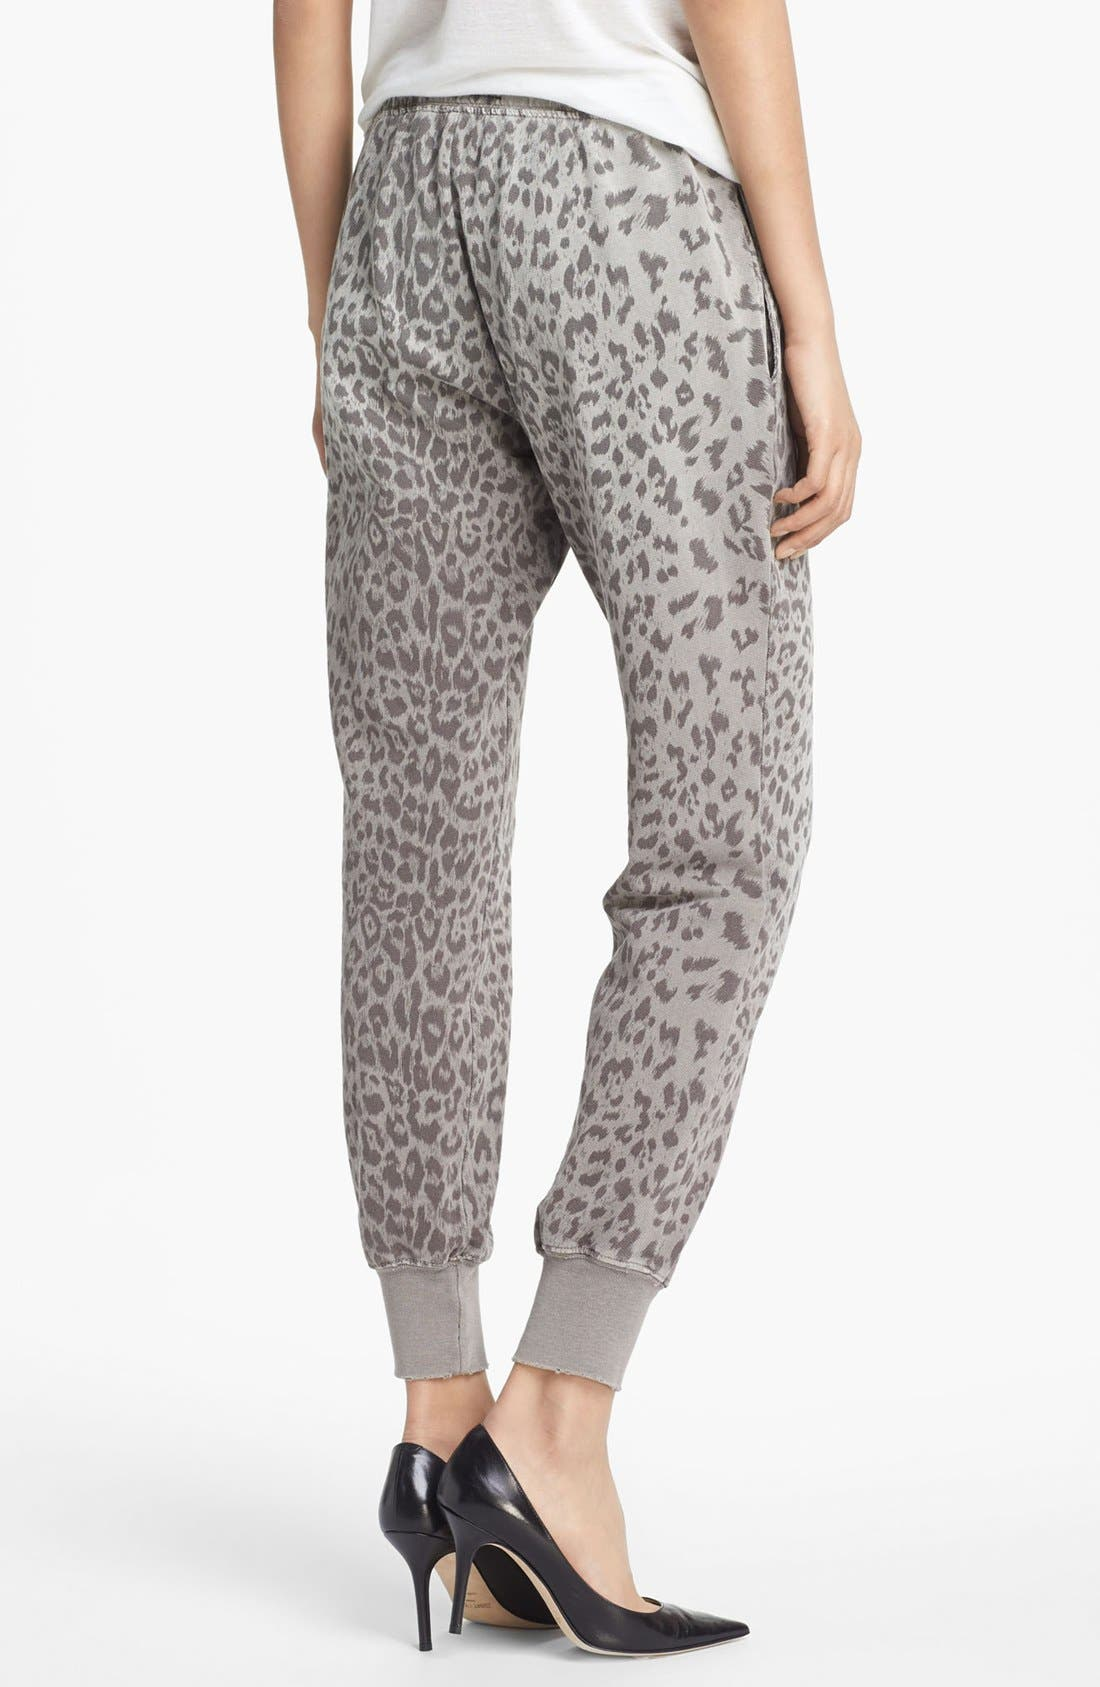 CURRENT/ELLIOTT,                             Animal Print Sweatpants,                             Alternate thumbnail 2, color,                             093